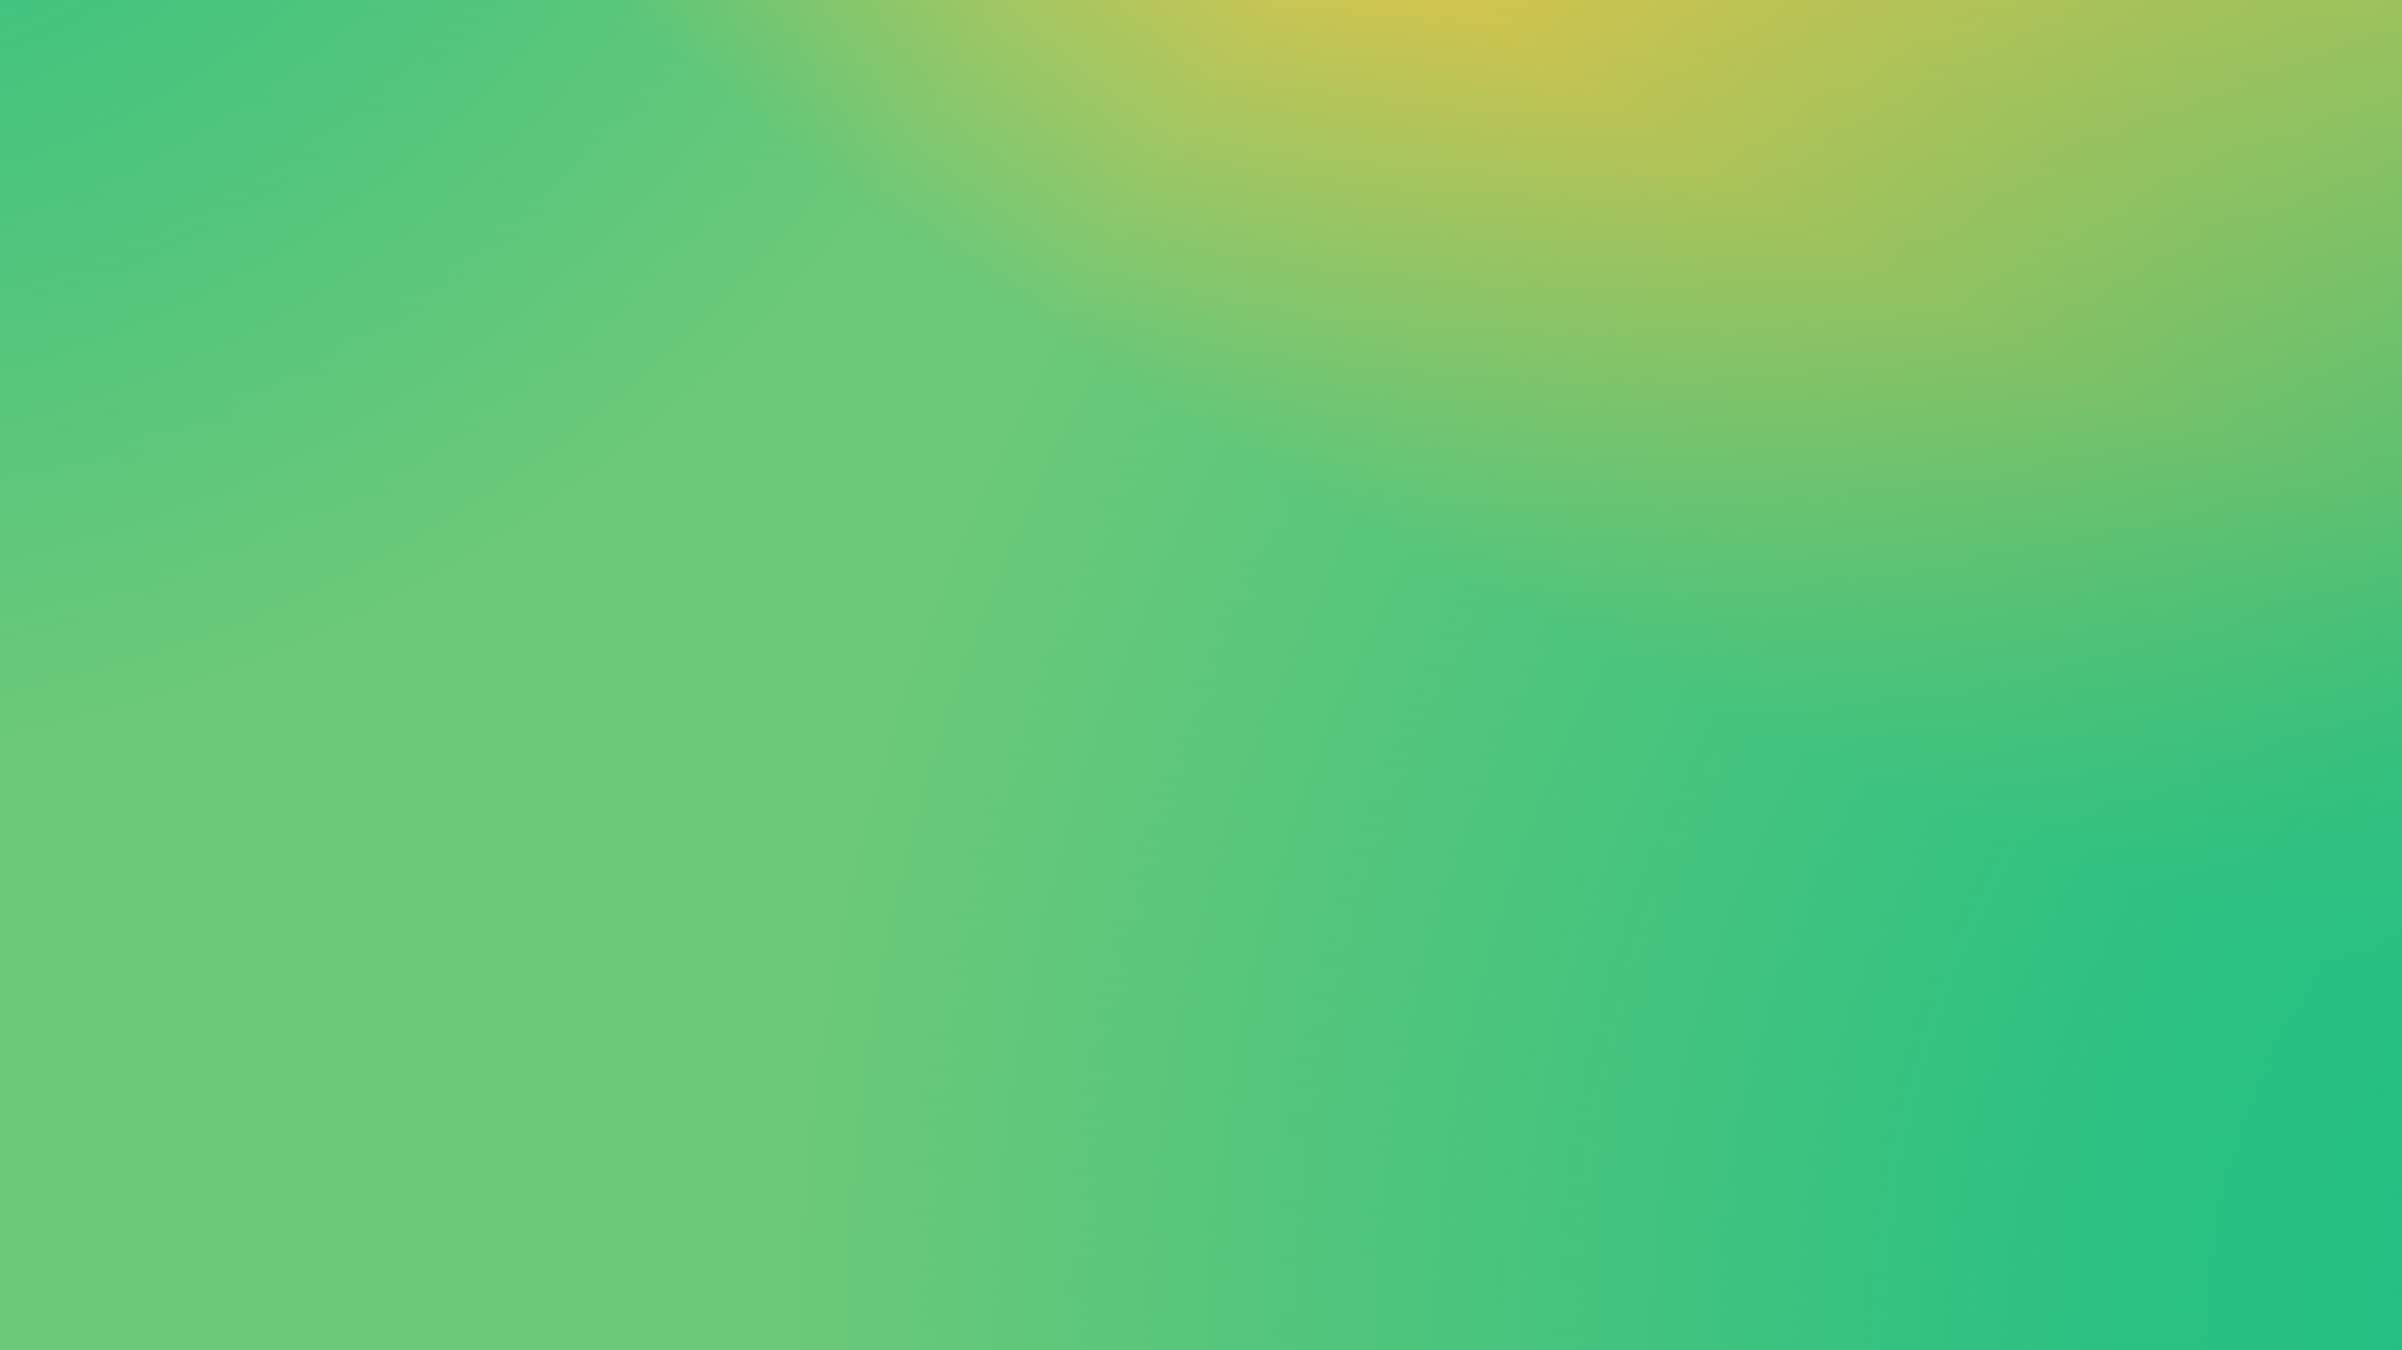 bg-gradient-green